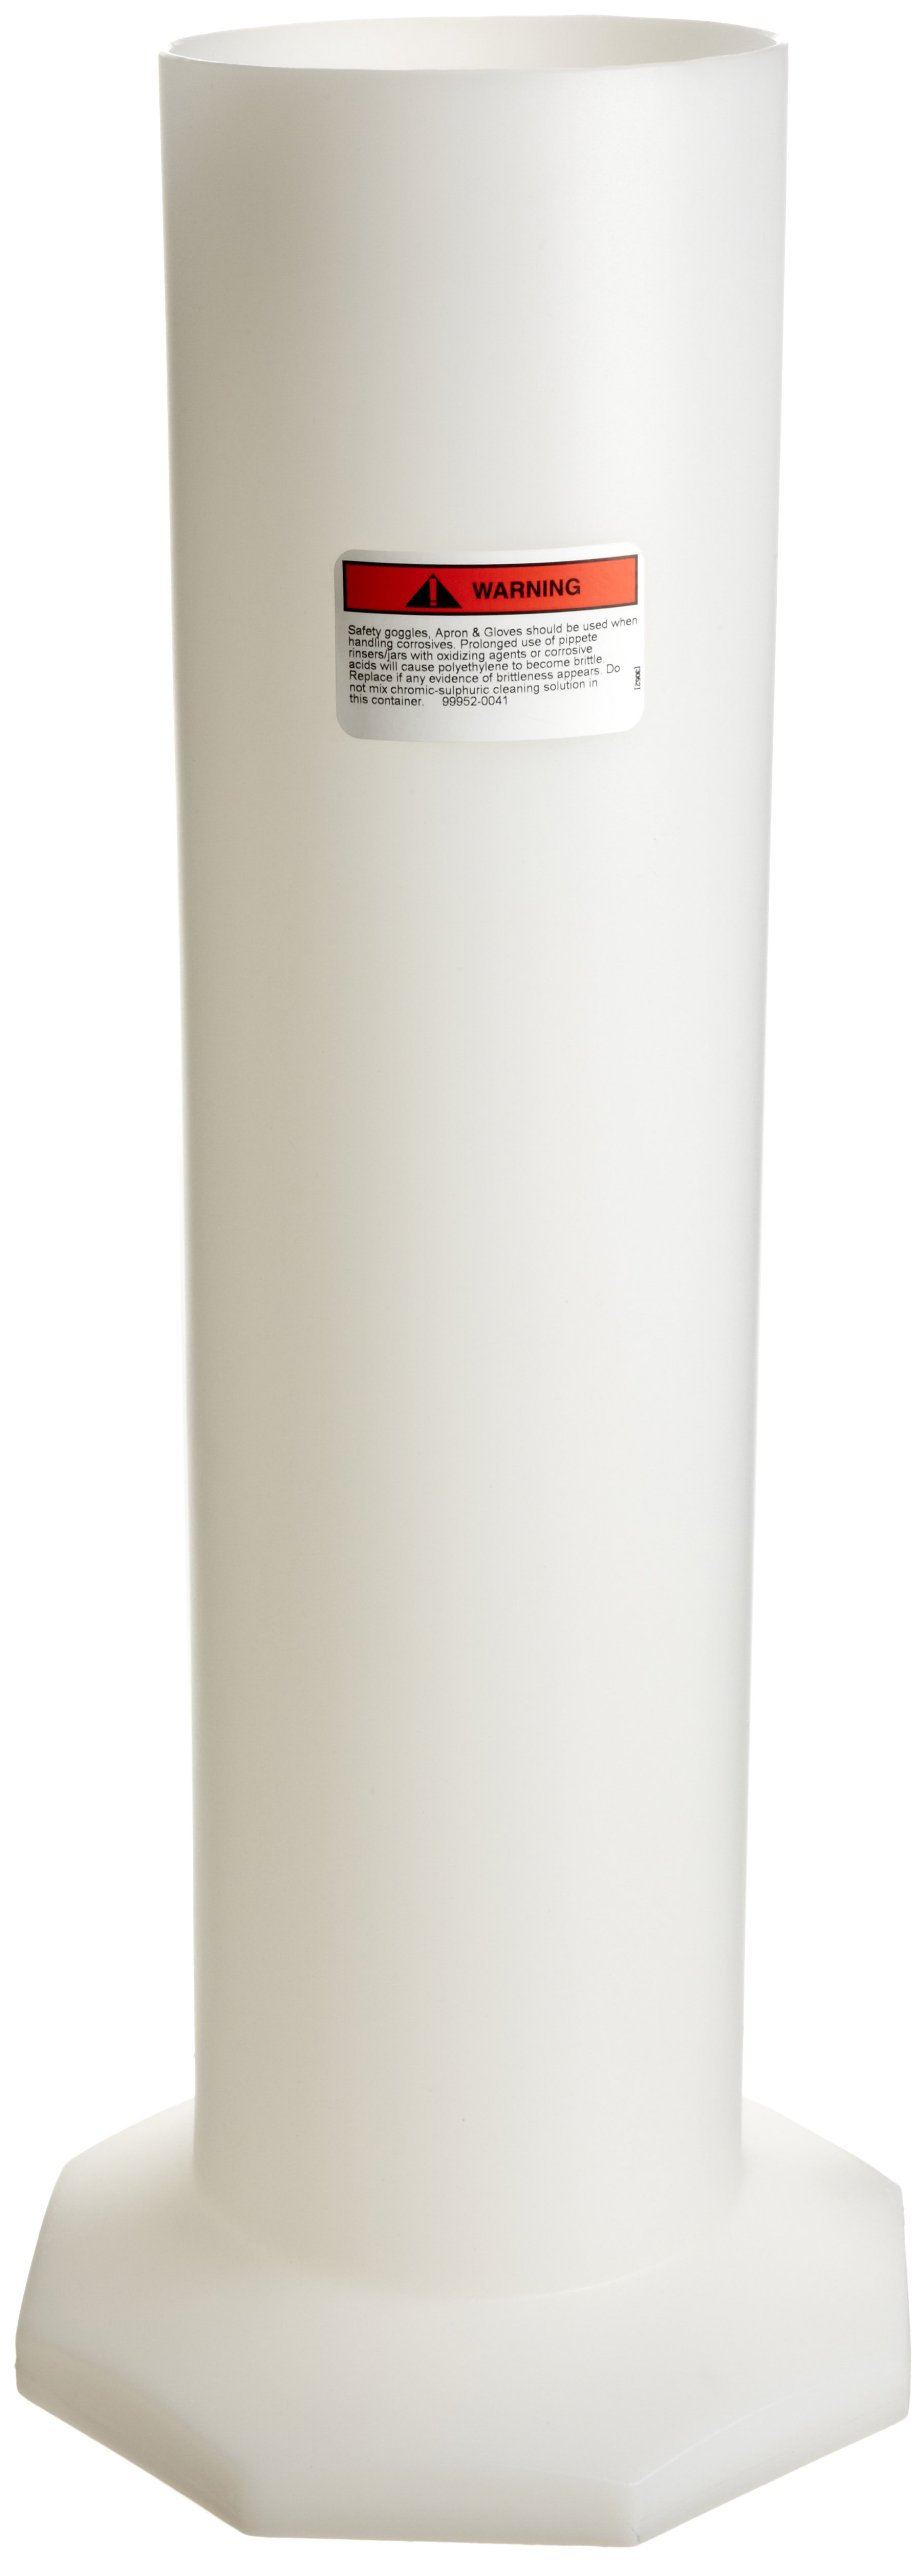 Bel-Art Polyethylene Pipette Jar (6 x 24 in.) for Cleanware Pipette Rinsing System (F17130-0024)